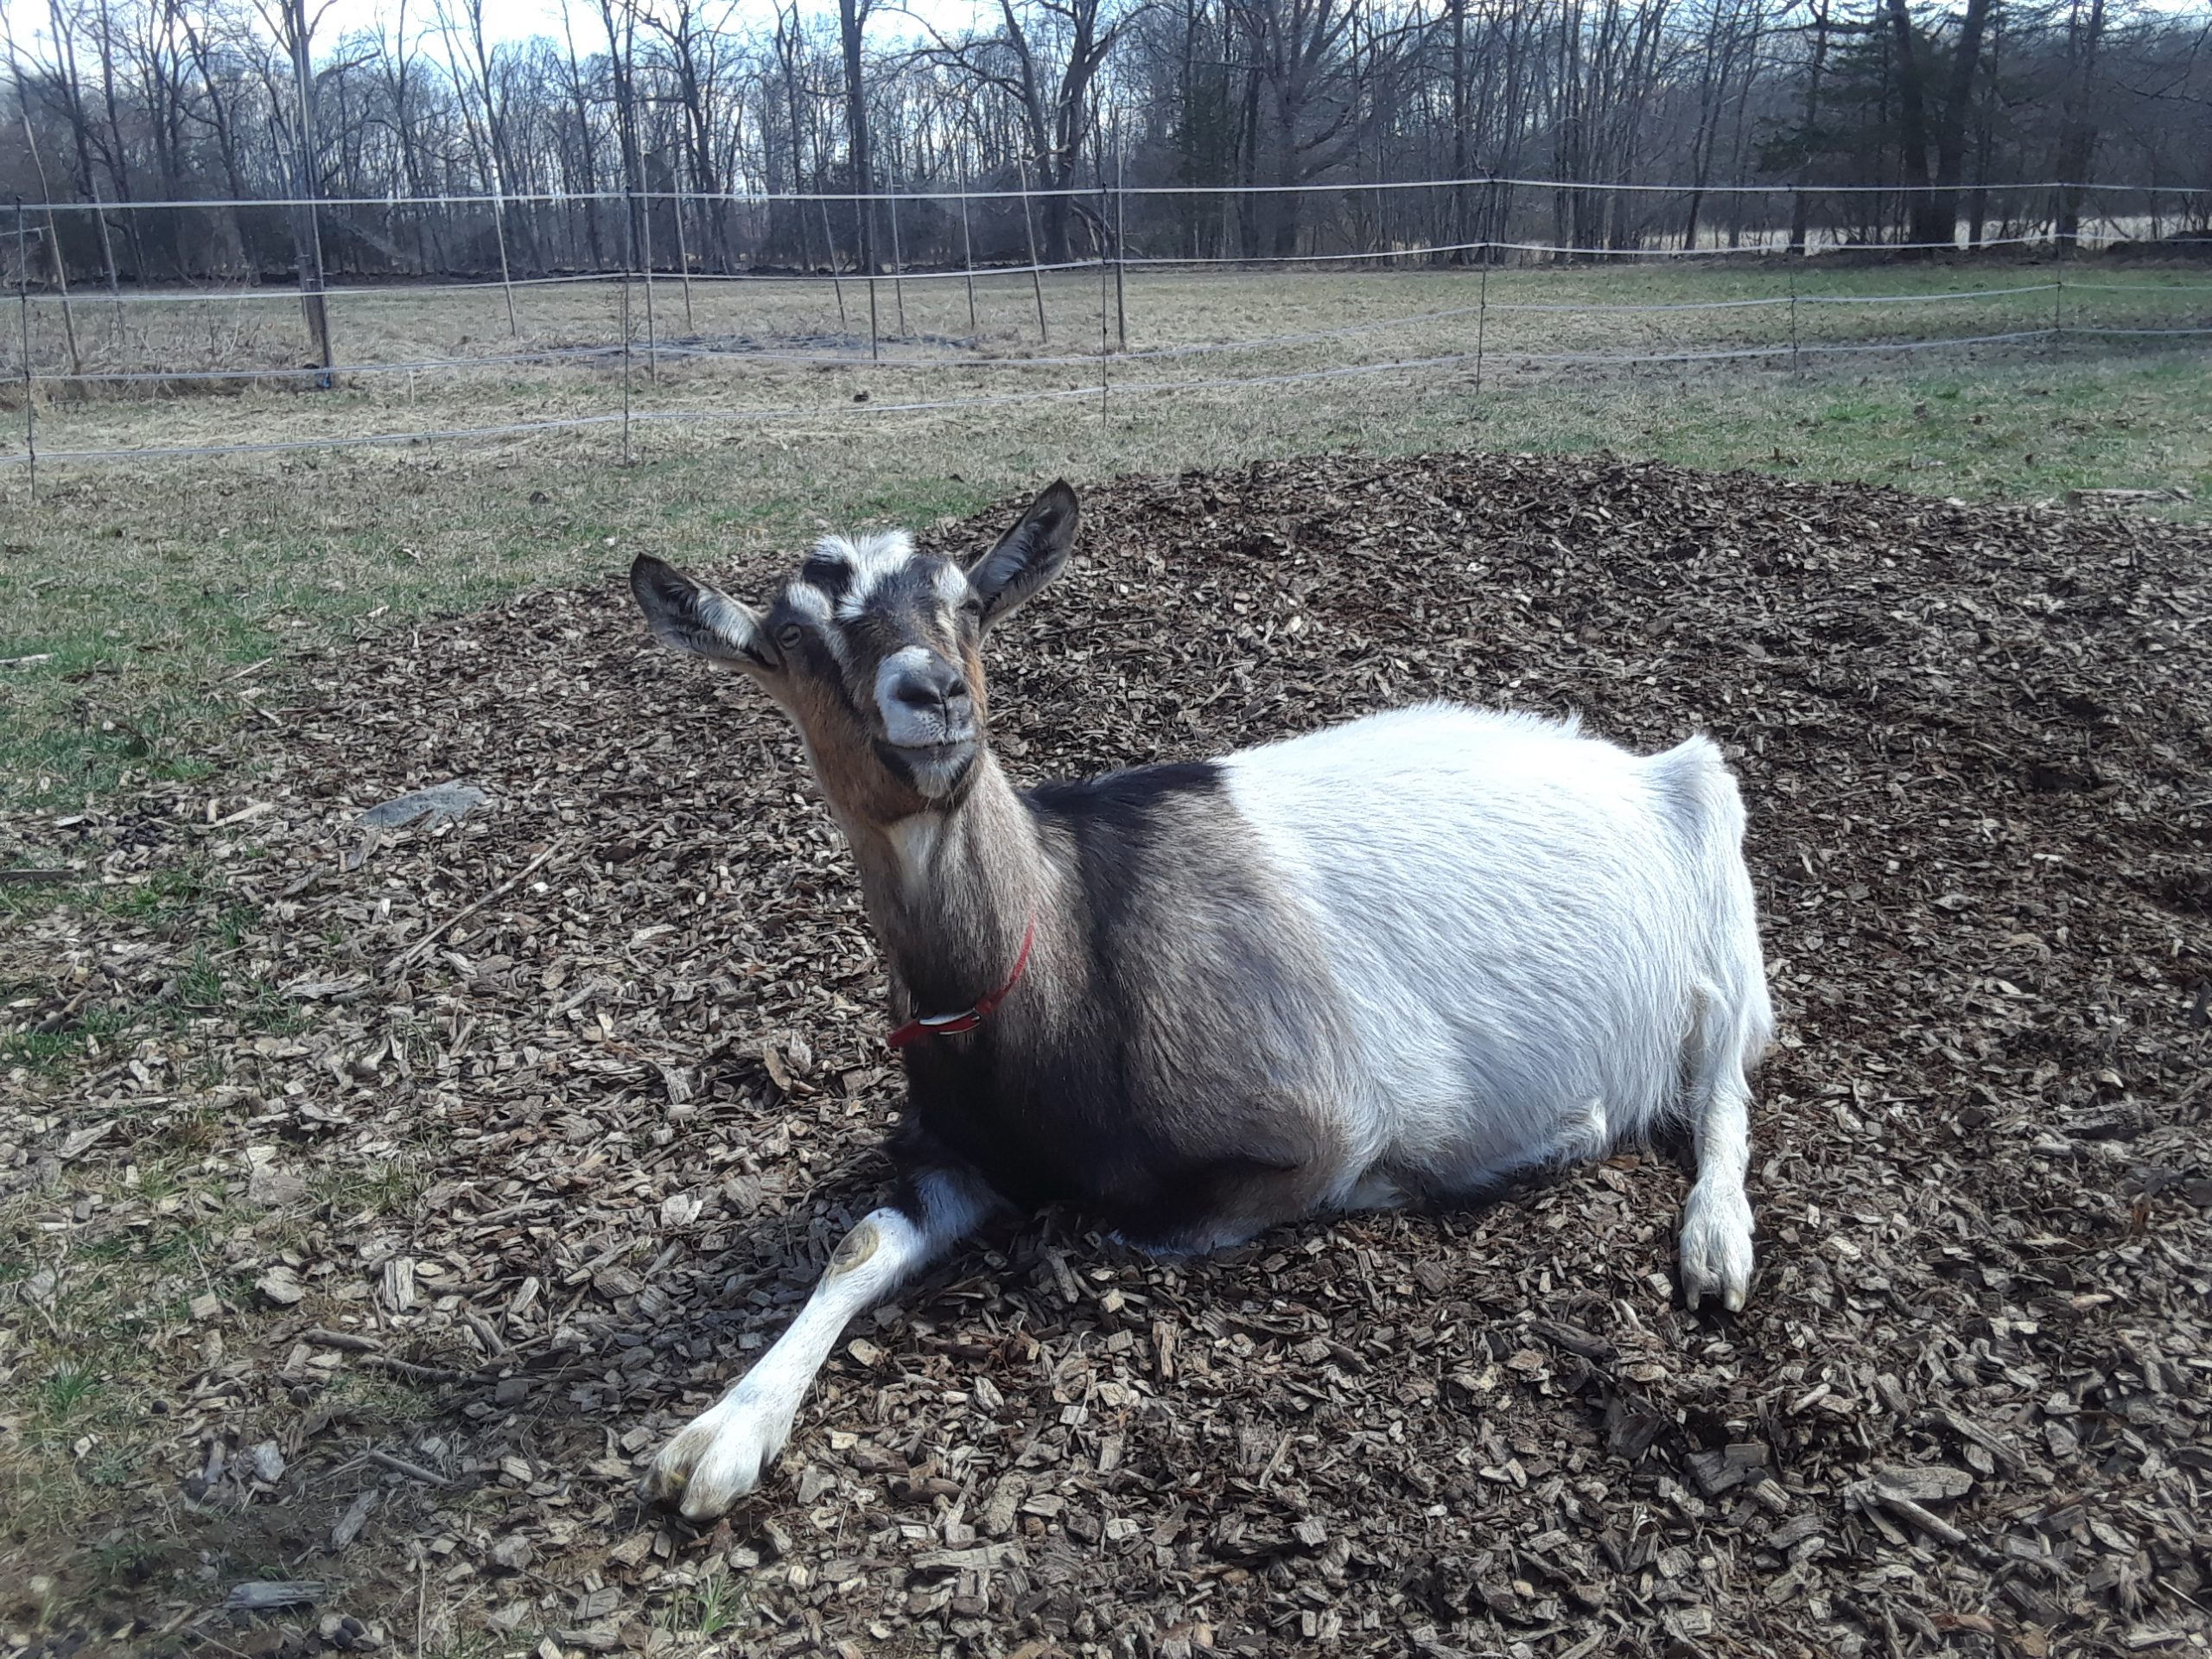 All of our kids will be born in April this year, unless some goat thinks otherwise